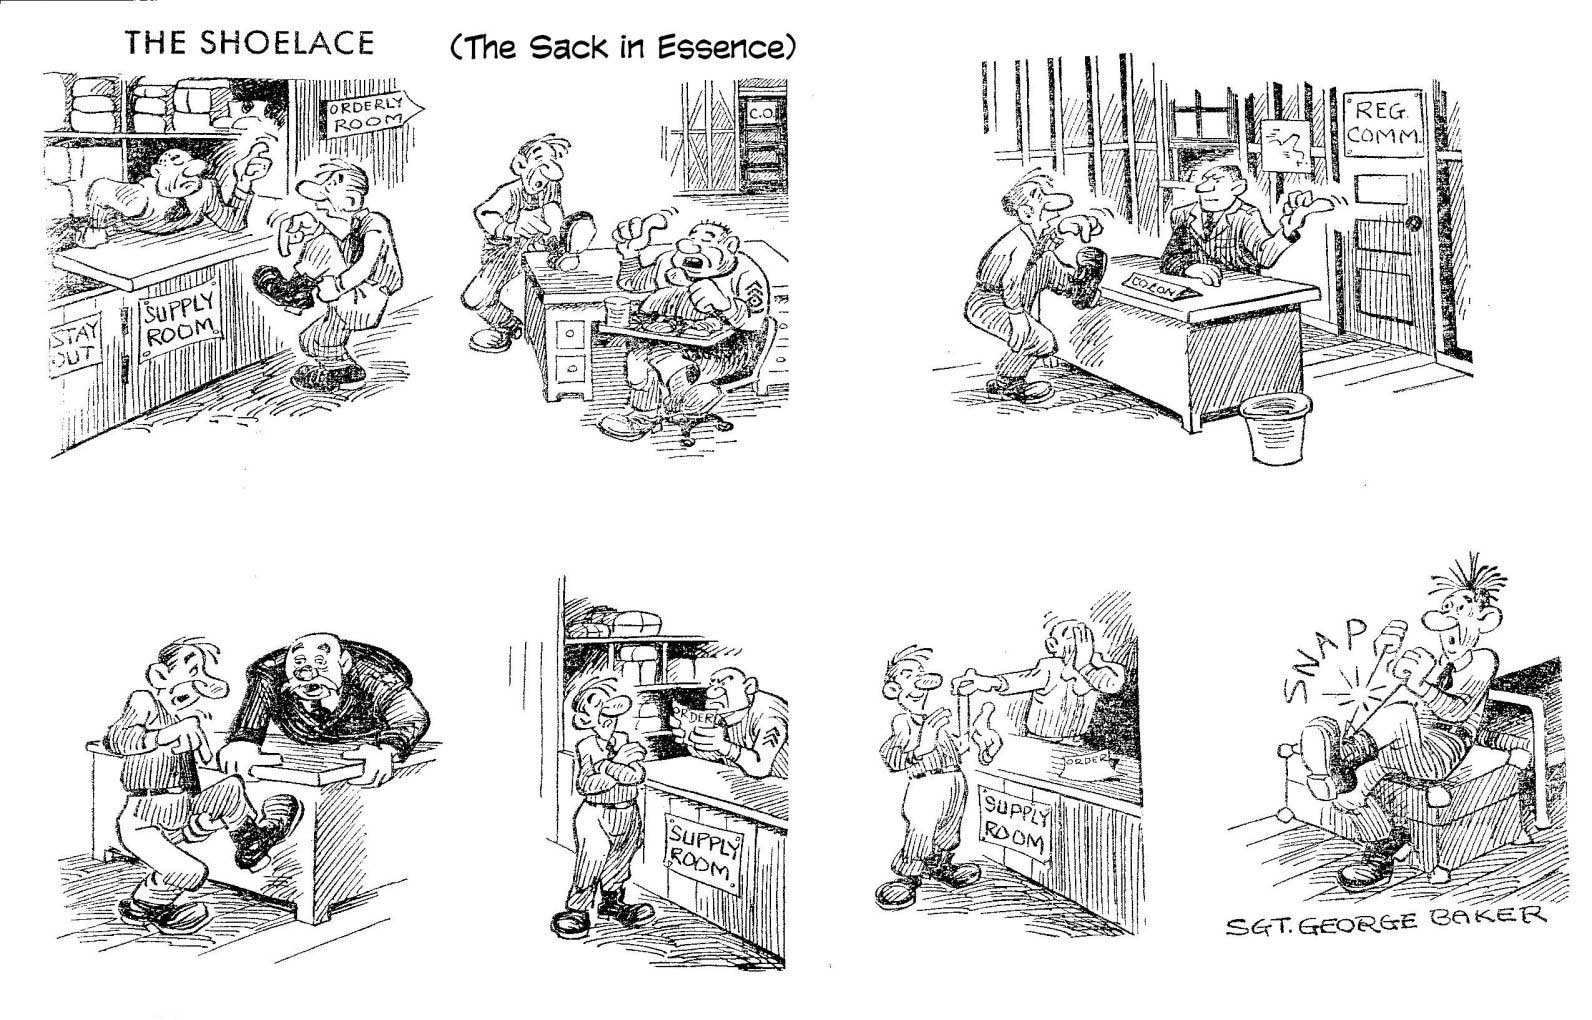 The Sad Sack by George Baker